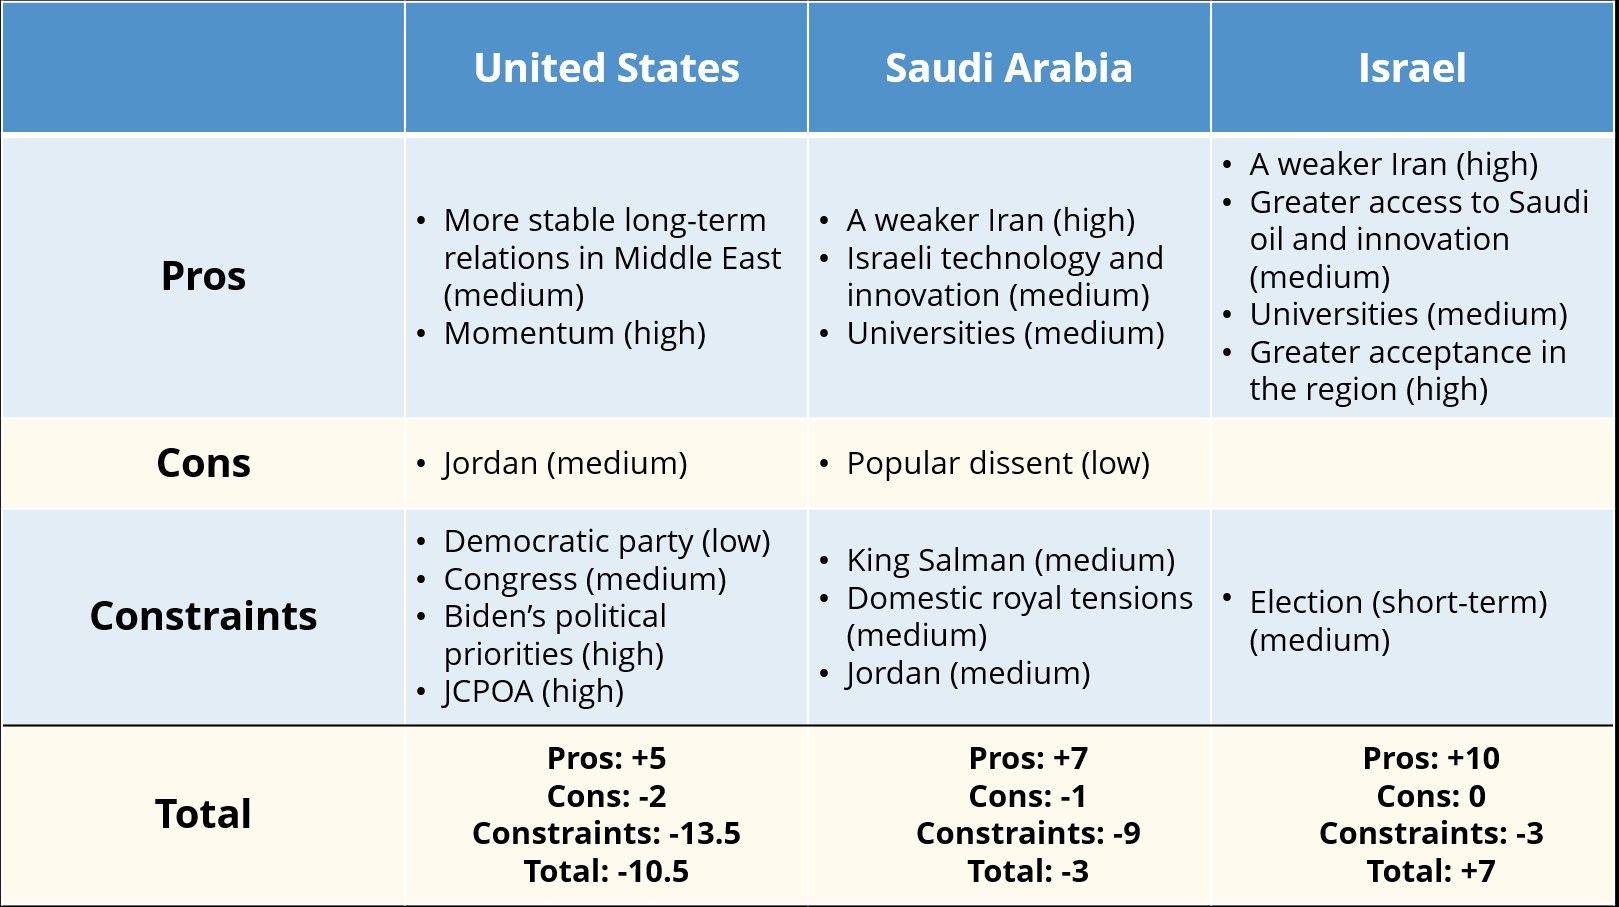 Table depicting the Pros, Cons, and Restrains for The United States, Saudi Arabia, and Israel when it comes to normalizing relations between Israel and Saudi Arabia before 2022. The pros for the US are: long-term stability in region (medium) and momentum (high). The cons are: Jordan (medium). And the constraints are the Democratic Party (low), Congress (medium), Biden's political priorities (high), JCPOA (aka nuclear deal - high). For Saudi Arabia, the pros are: A weaker Iran (high), Israeli tech and innovation (medium), and univeristies (medium). The cons: popular dissent (low). Constraints: King Salman (medium), royal tensions (medium), Jordan (medium). For Israel, the pros are: A weaker Iran (high), Greater access to Saudi oil and innovation (medium), Universities (medium), and greater acceptance in region (high). Israel has no cons. For constraints, they have the election, which is a short-term, medium effect.